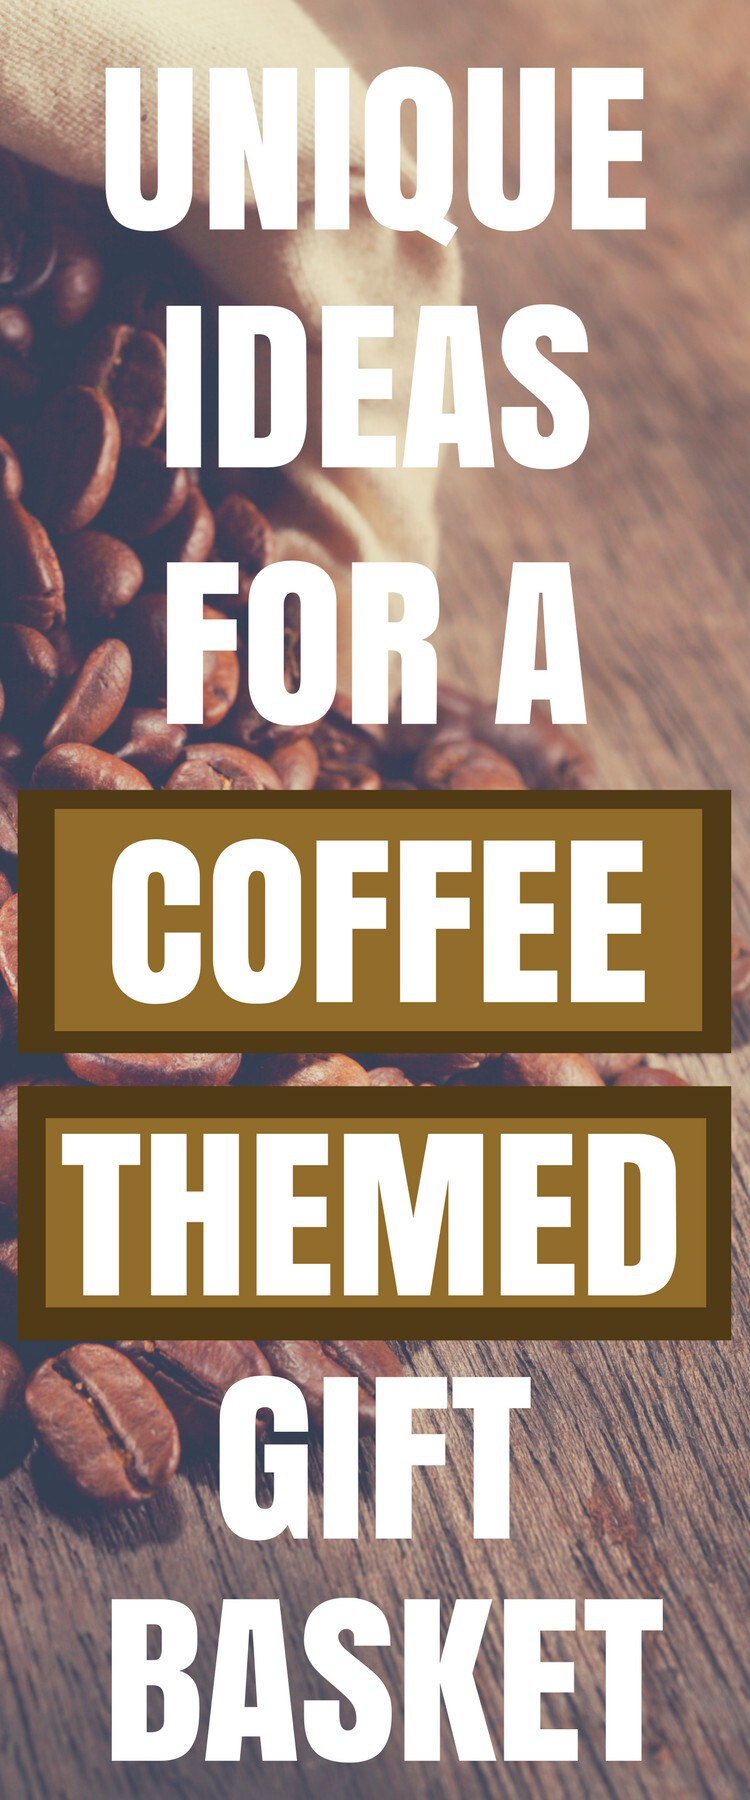 unique ideas for a coffee themed gift basket